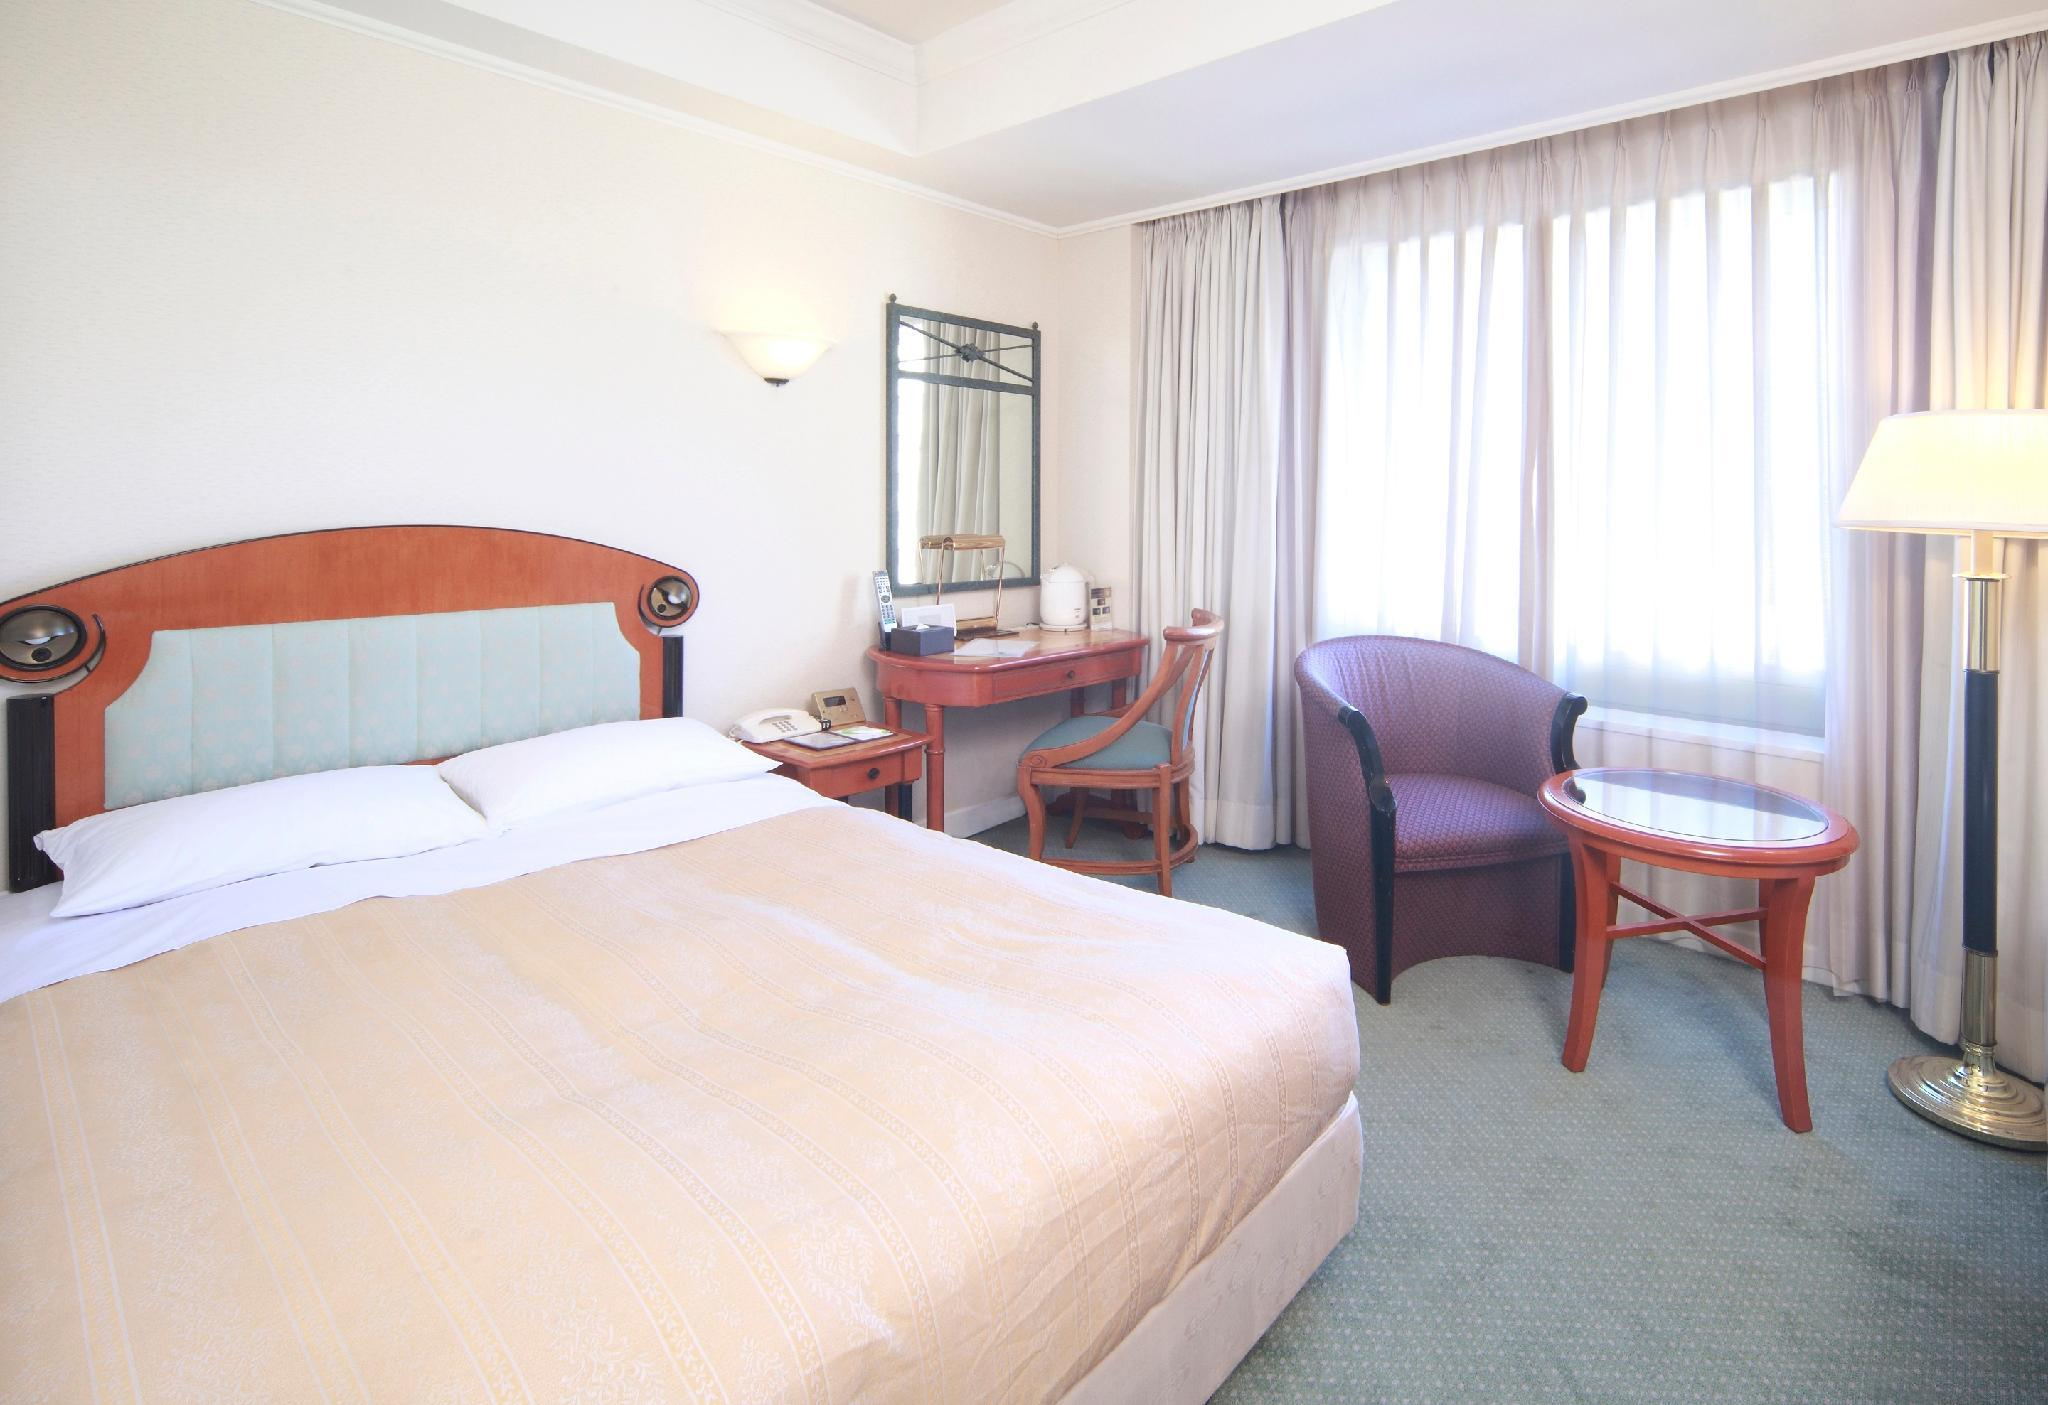 Low Floor Room with Small Double Bed - Smoking, Check-In After 9:00 PM, Check-Out Before 9:00 AM